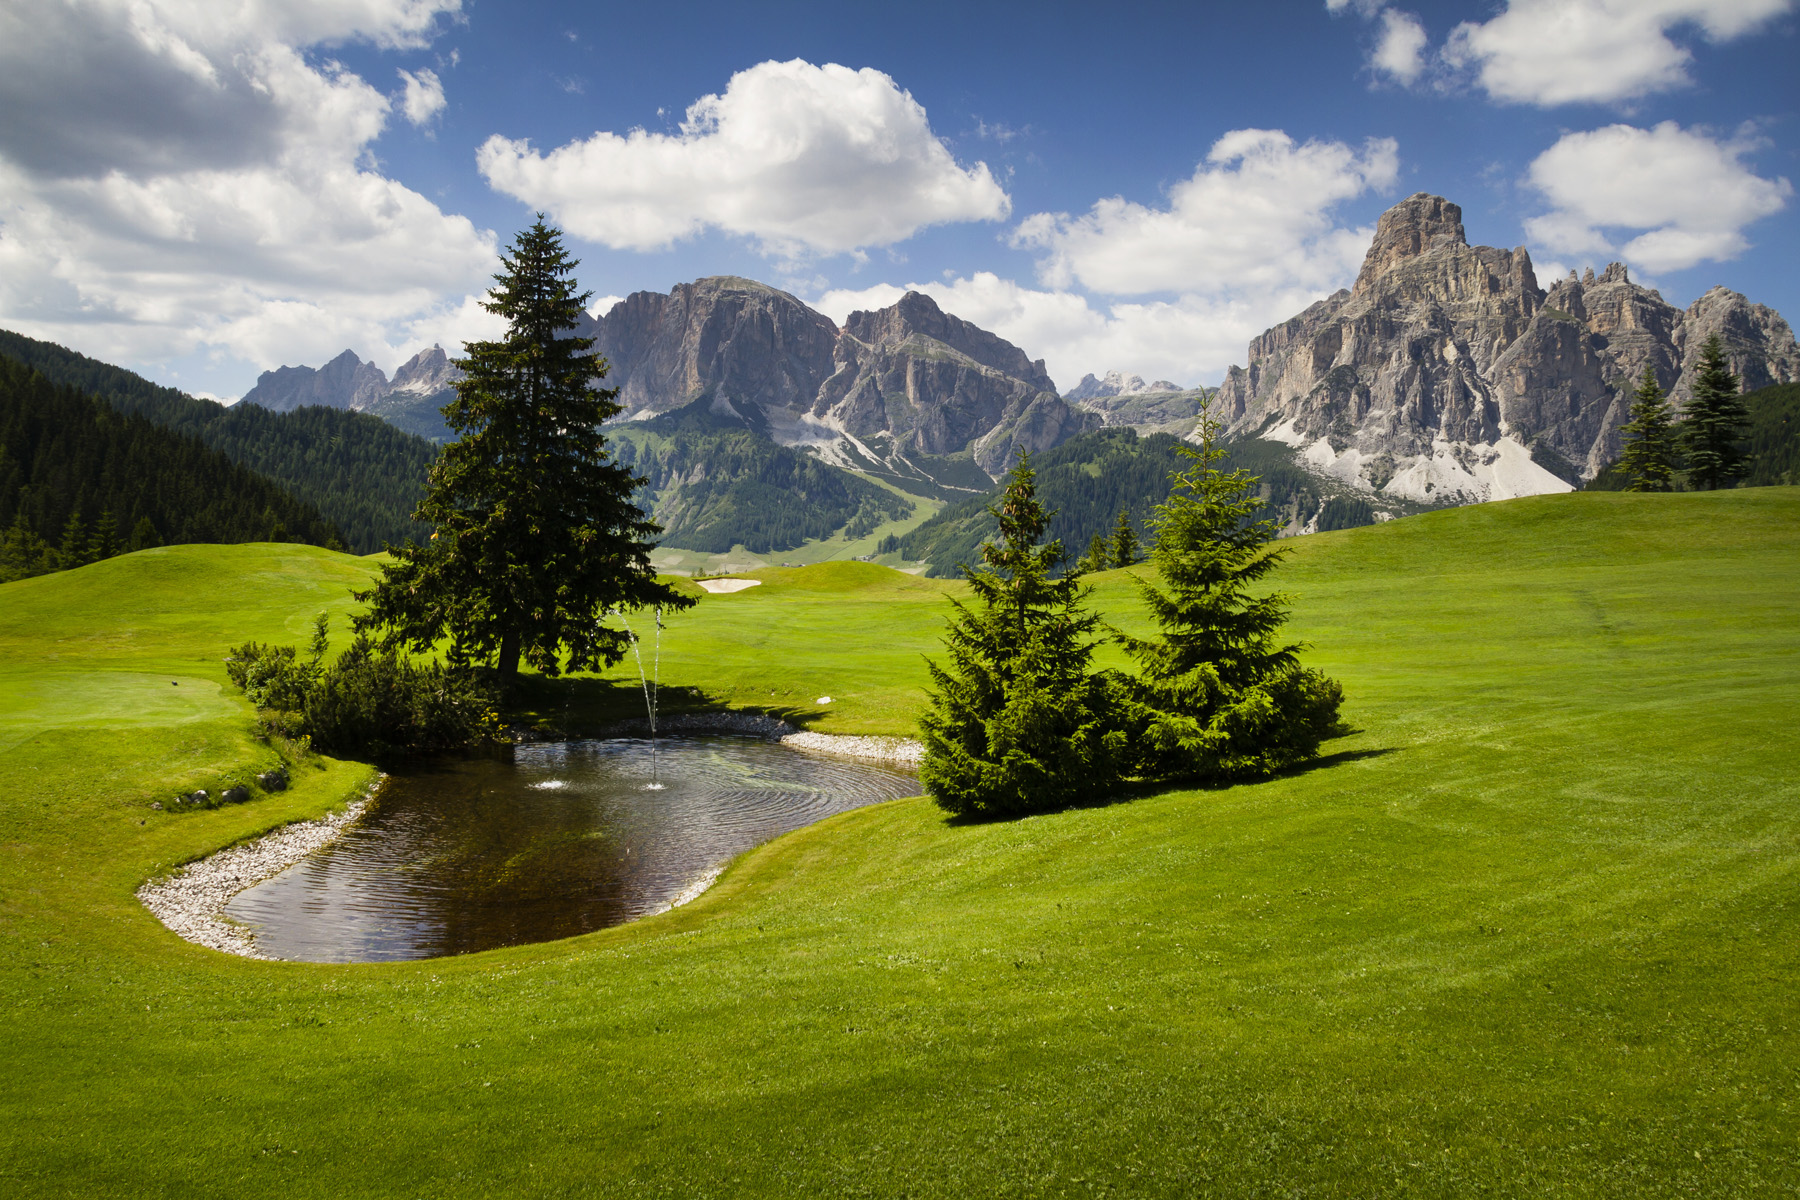 Beautiful golf course in the mountains with spectacular views